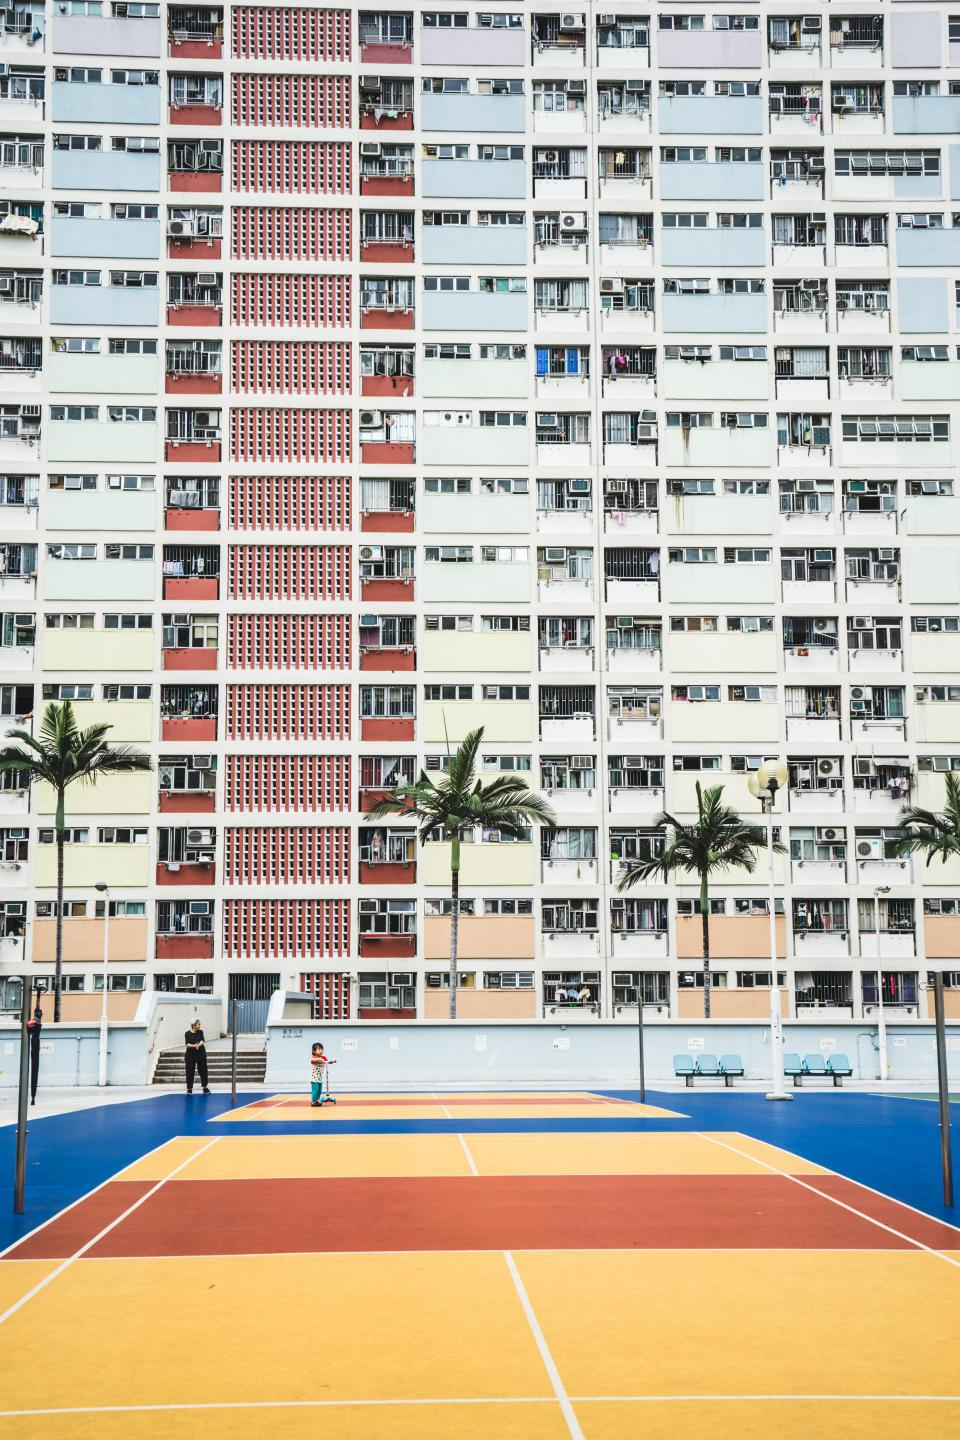 hotel, building, city, urban, guy, player, man, basketball, court, ring, coconut, trees, windows, panes, chair